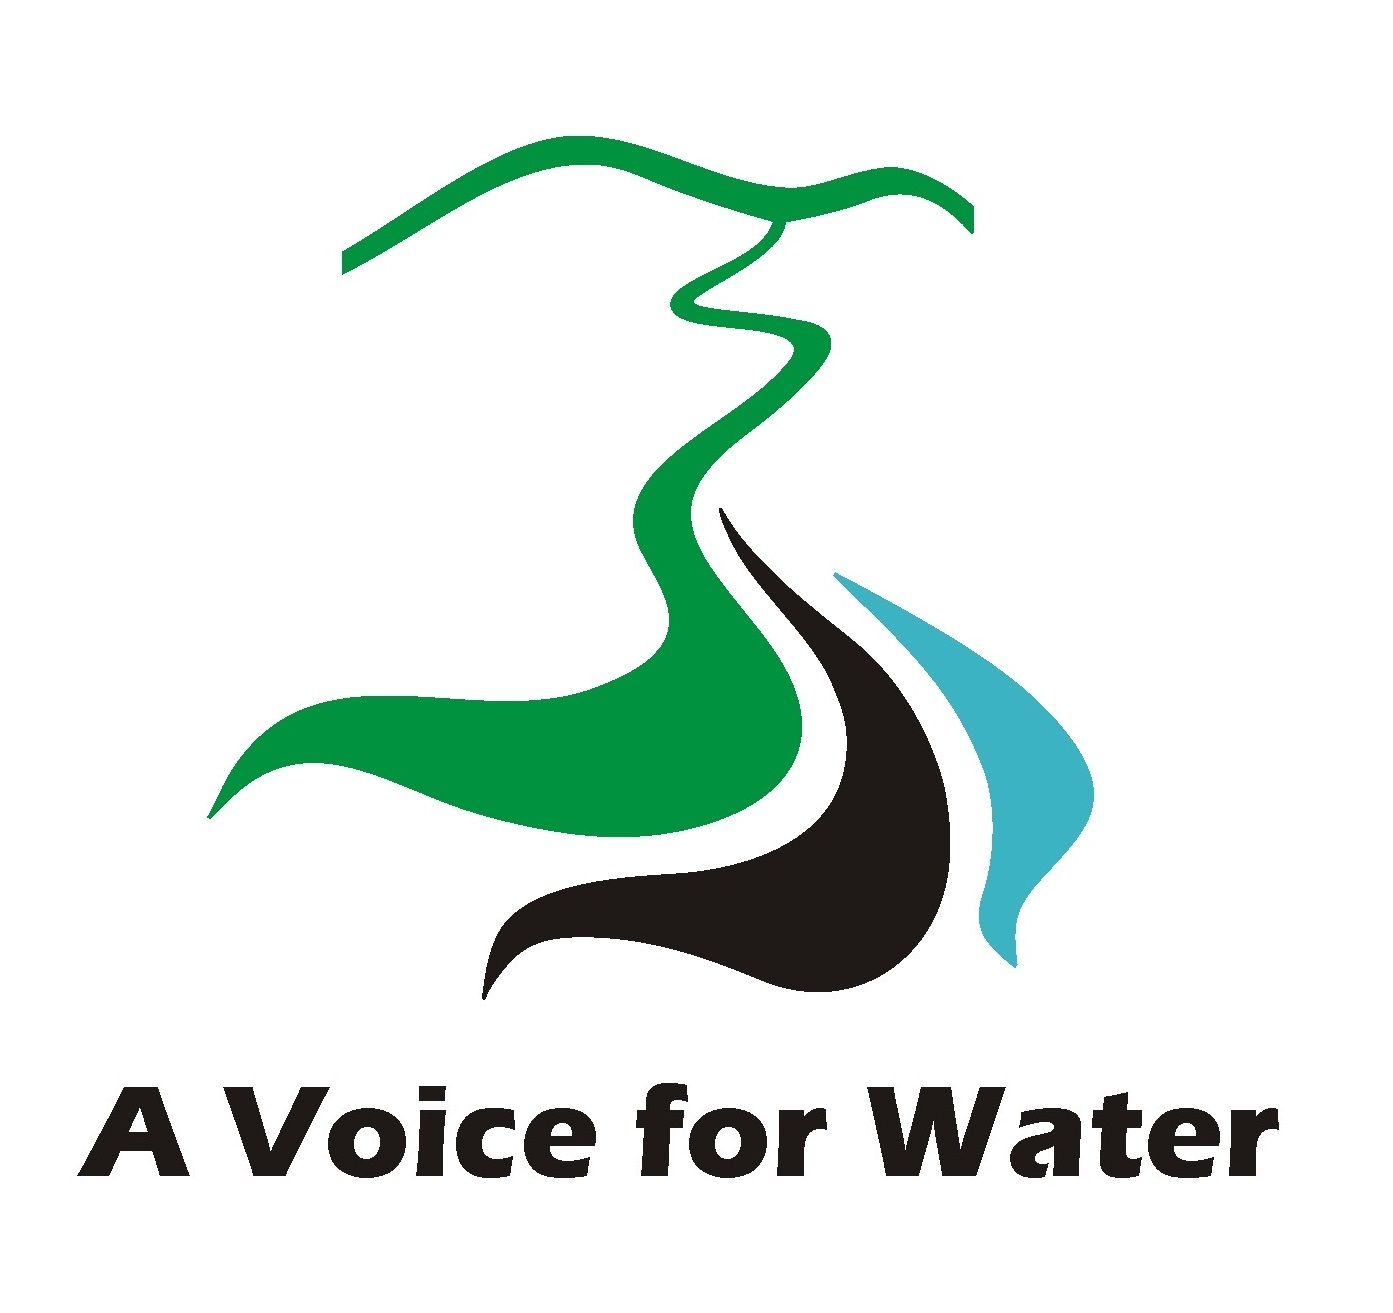 rivers a voice for water